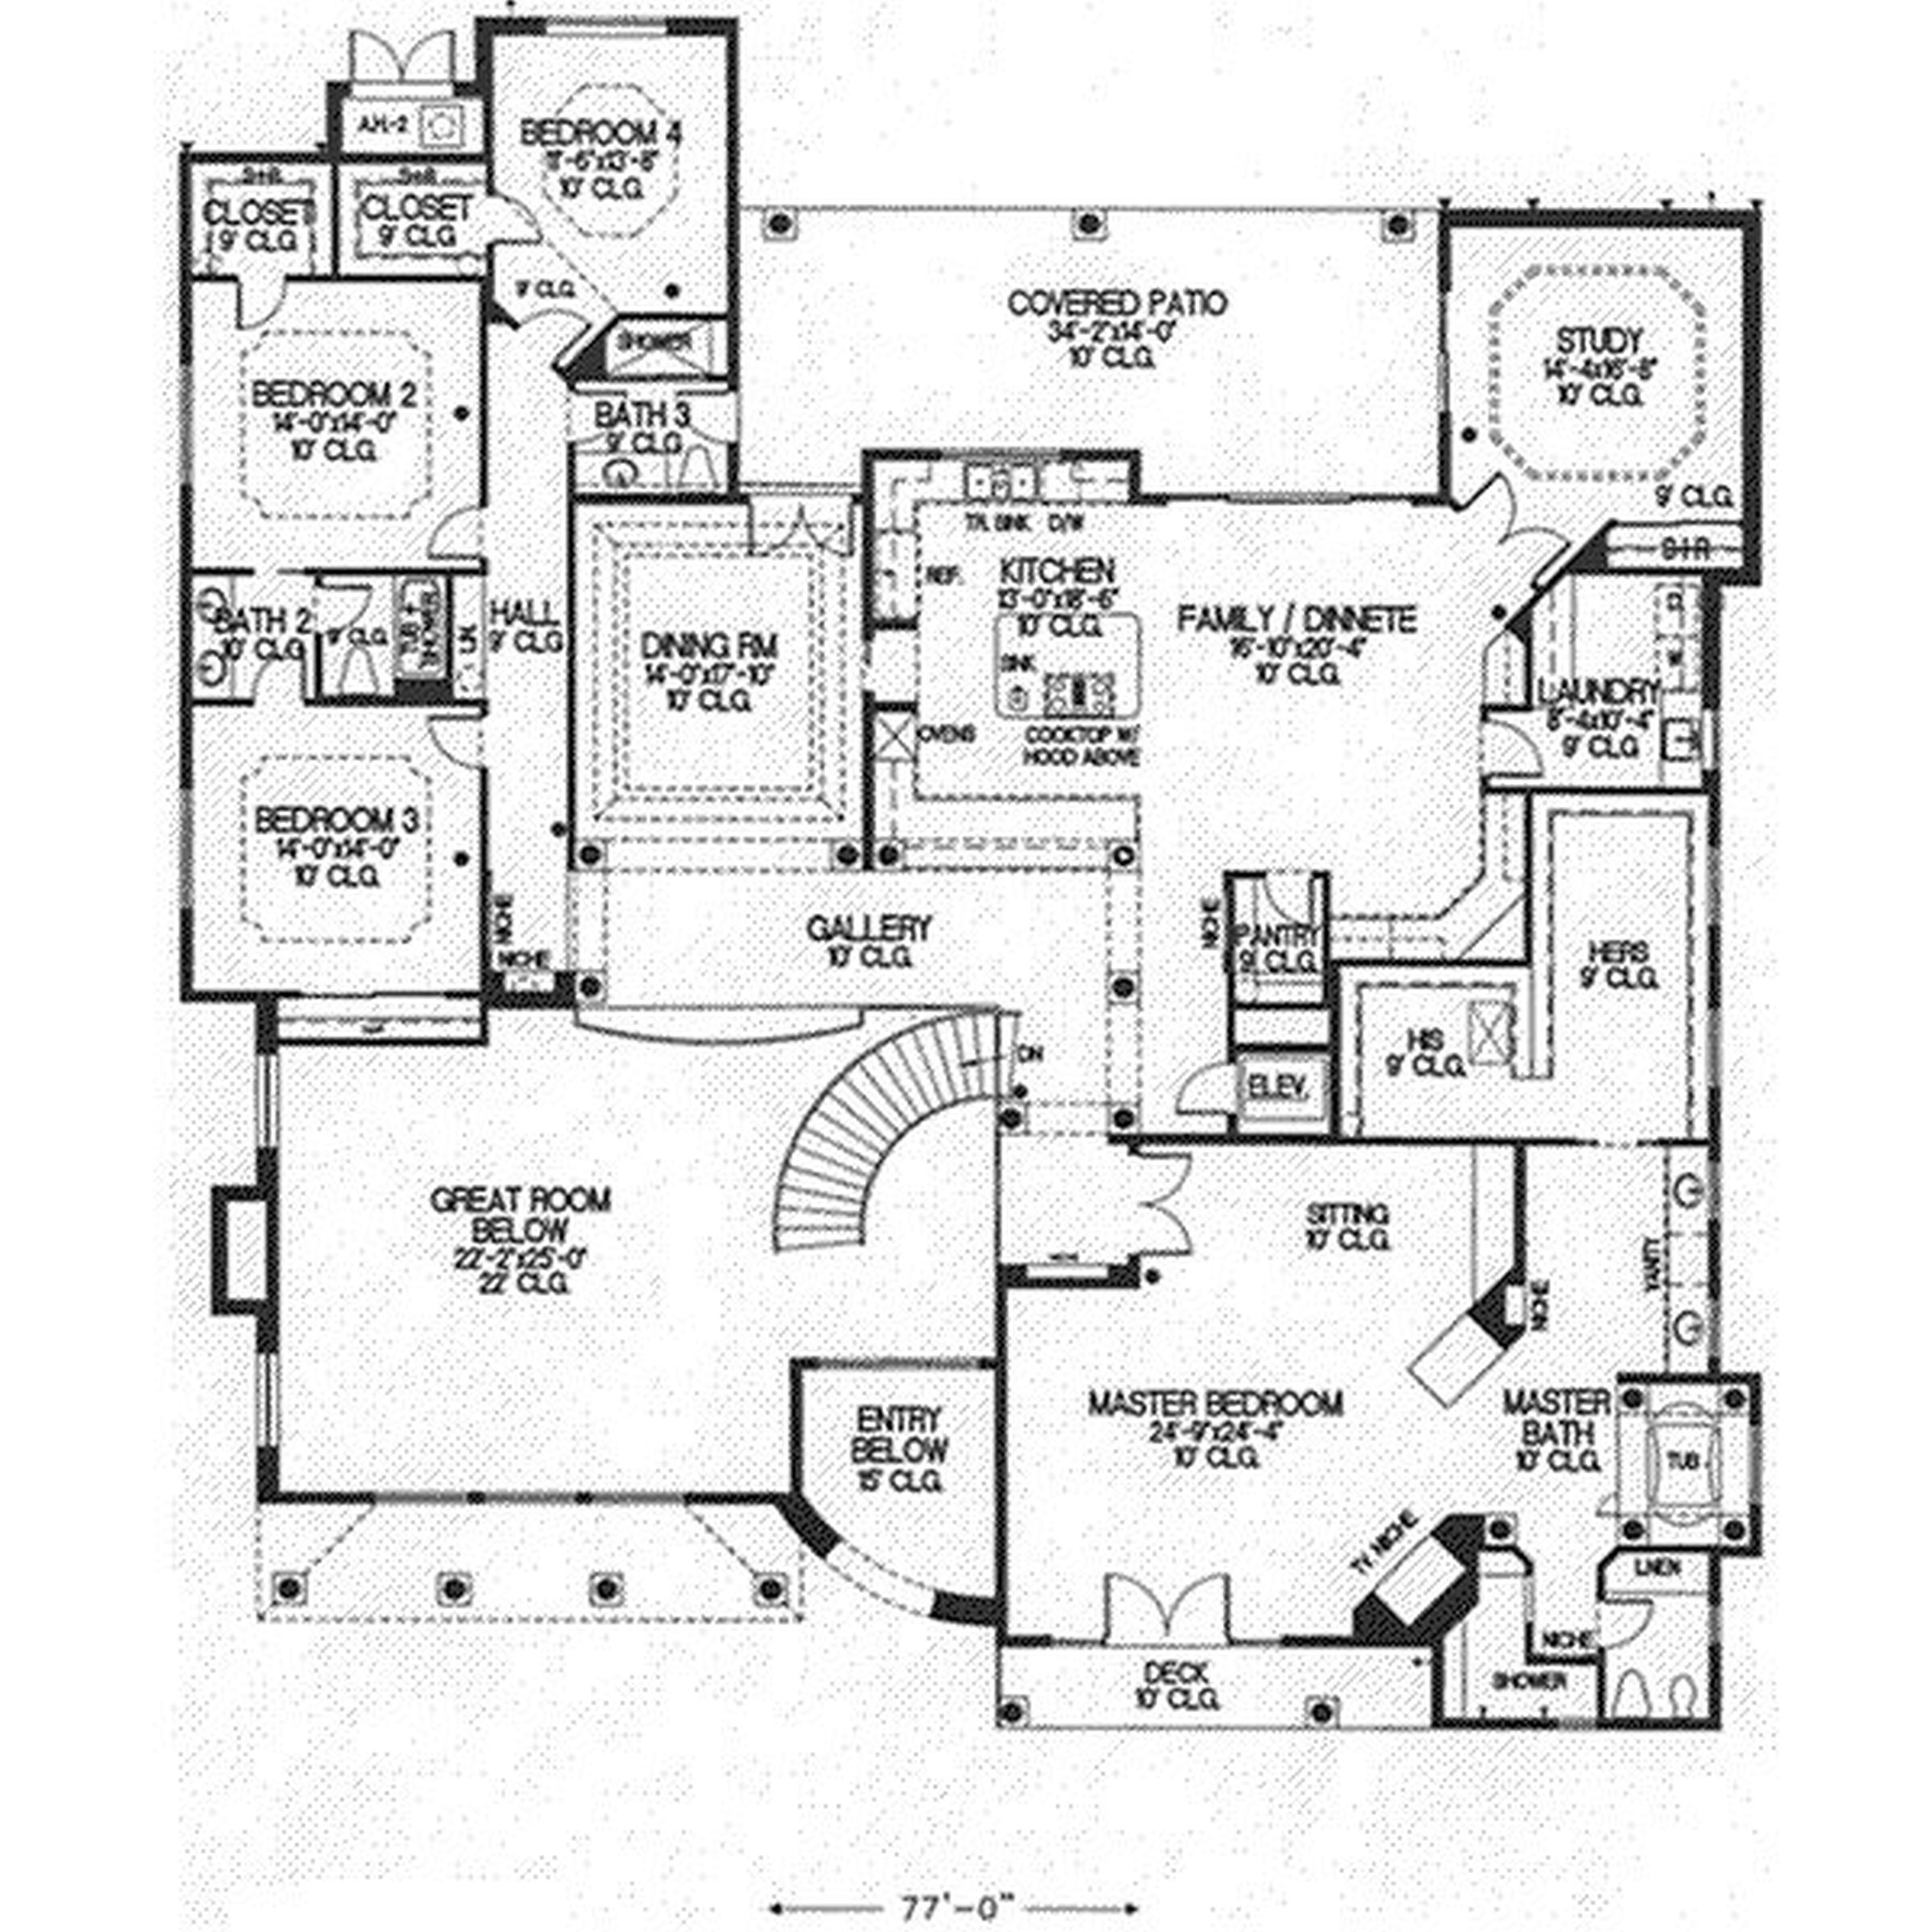 5000x5000 Home Design Drawings